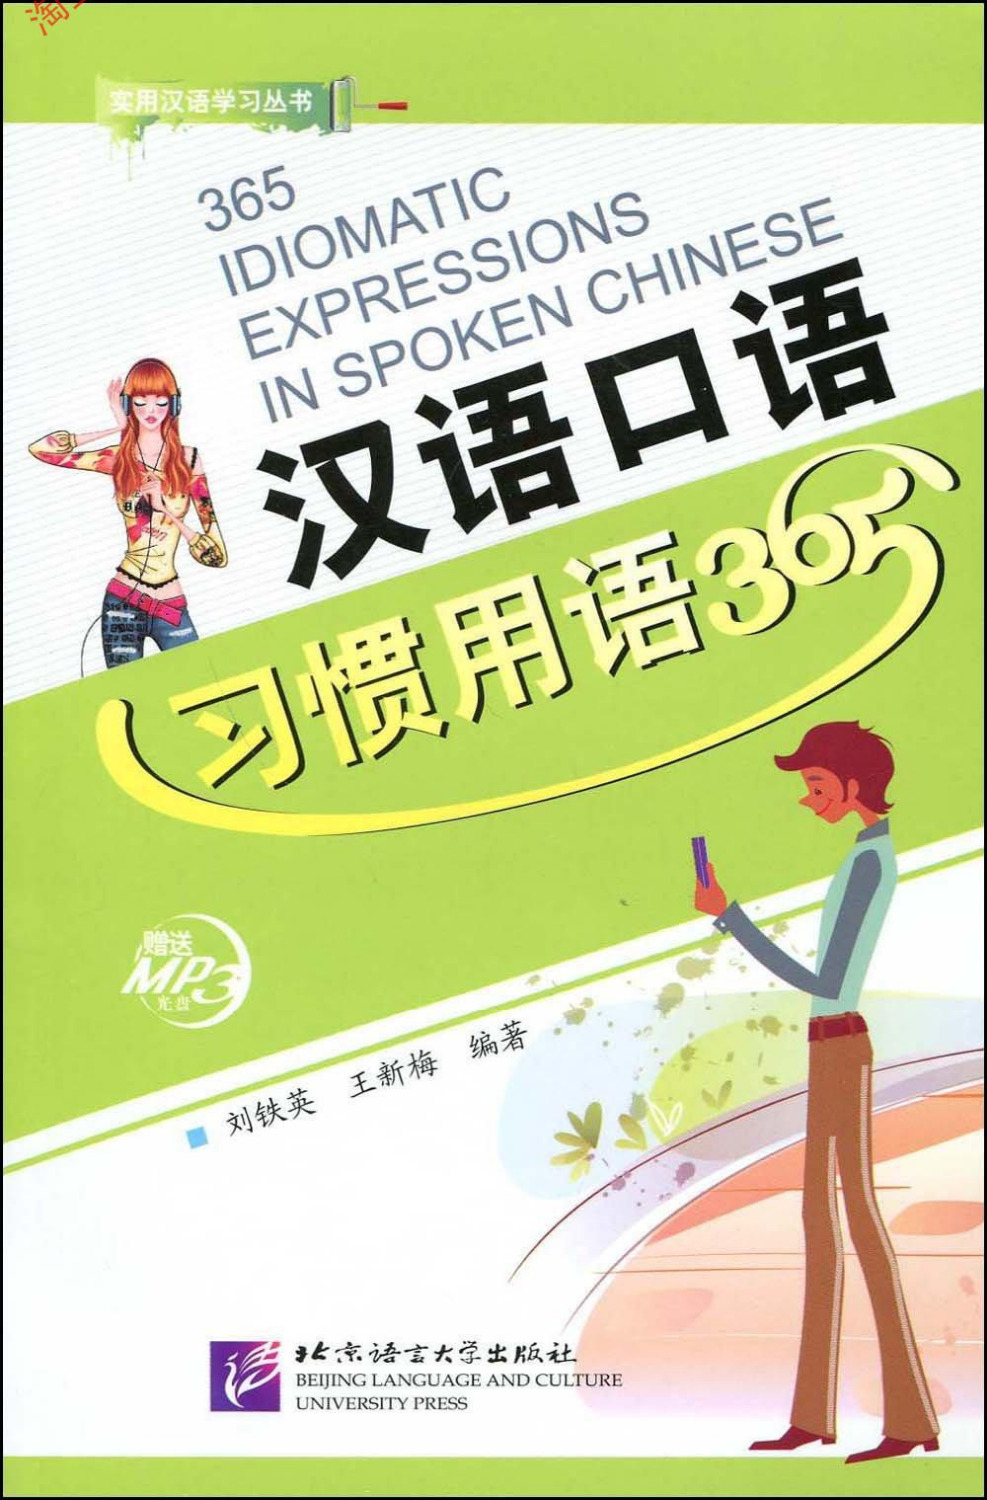 365 Idiomatic Expressions in Spoken Chinese with 1 CD (Chinese Edition) chinese language learning book a complete handbook of spoken chinese 1pcs cd include